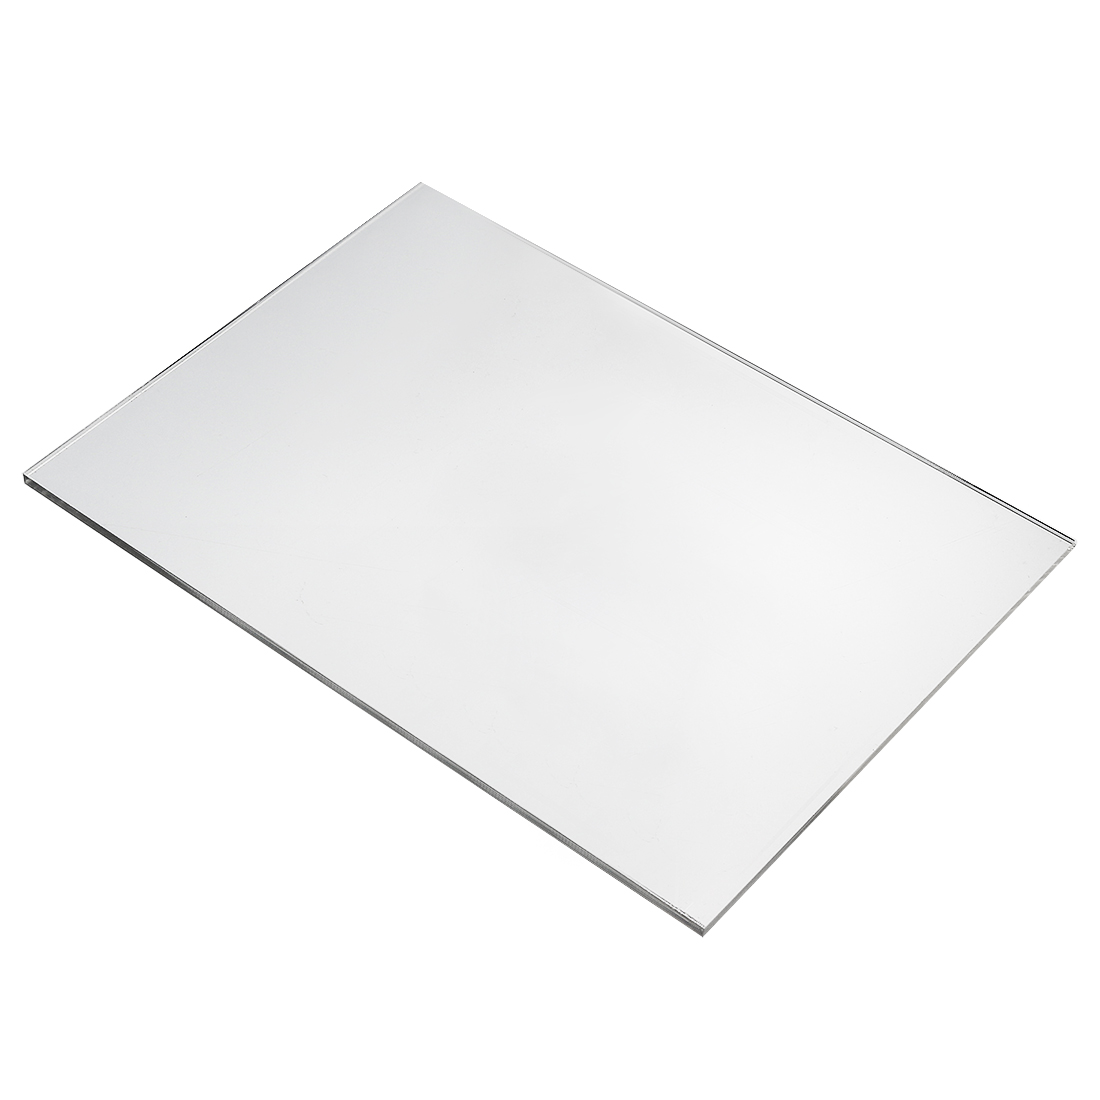 6mm Thickness Clear Plastic Acrylic Plexiglass Sheet A4 Size 210mm x 297mm